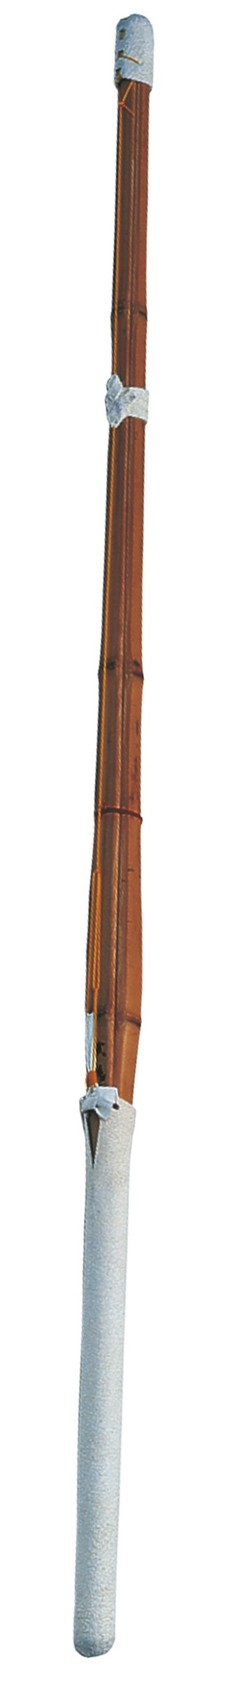 SHINAI ENFANT IMPORTATION (32) M40832